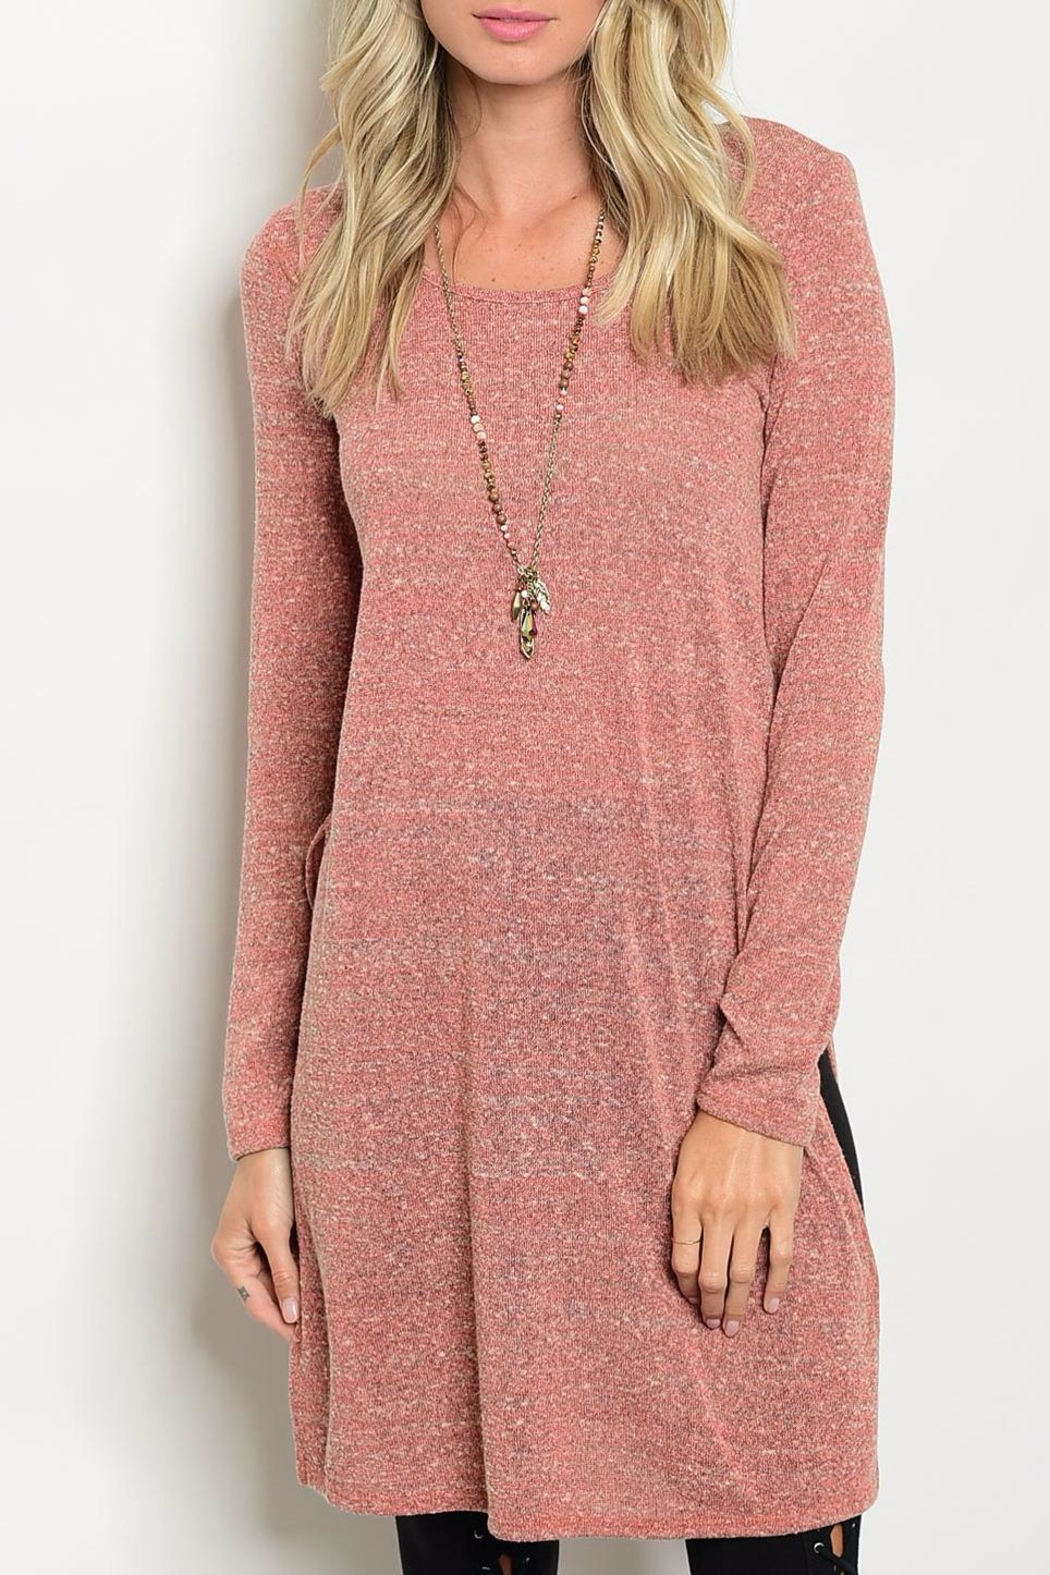 rokoko Rust Tunic Top - Main Image